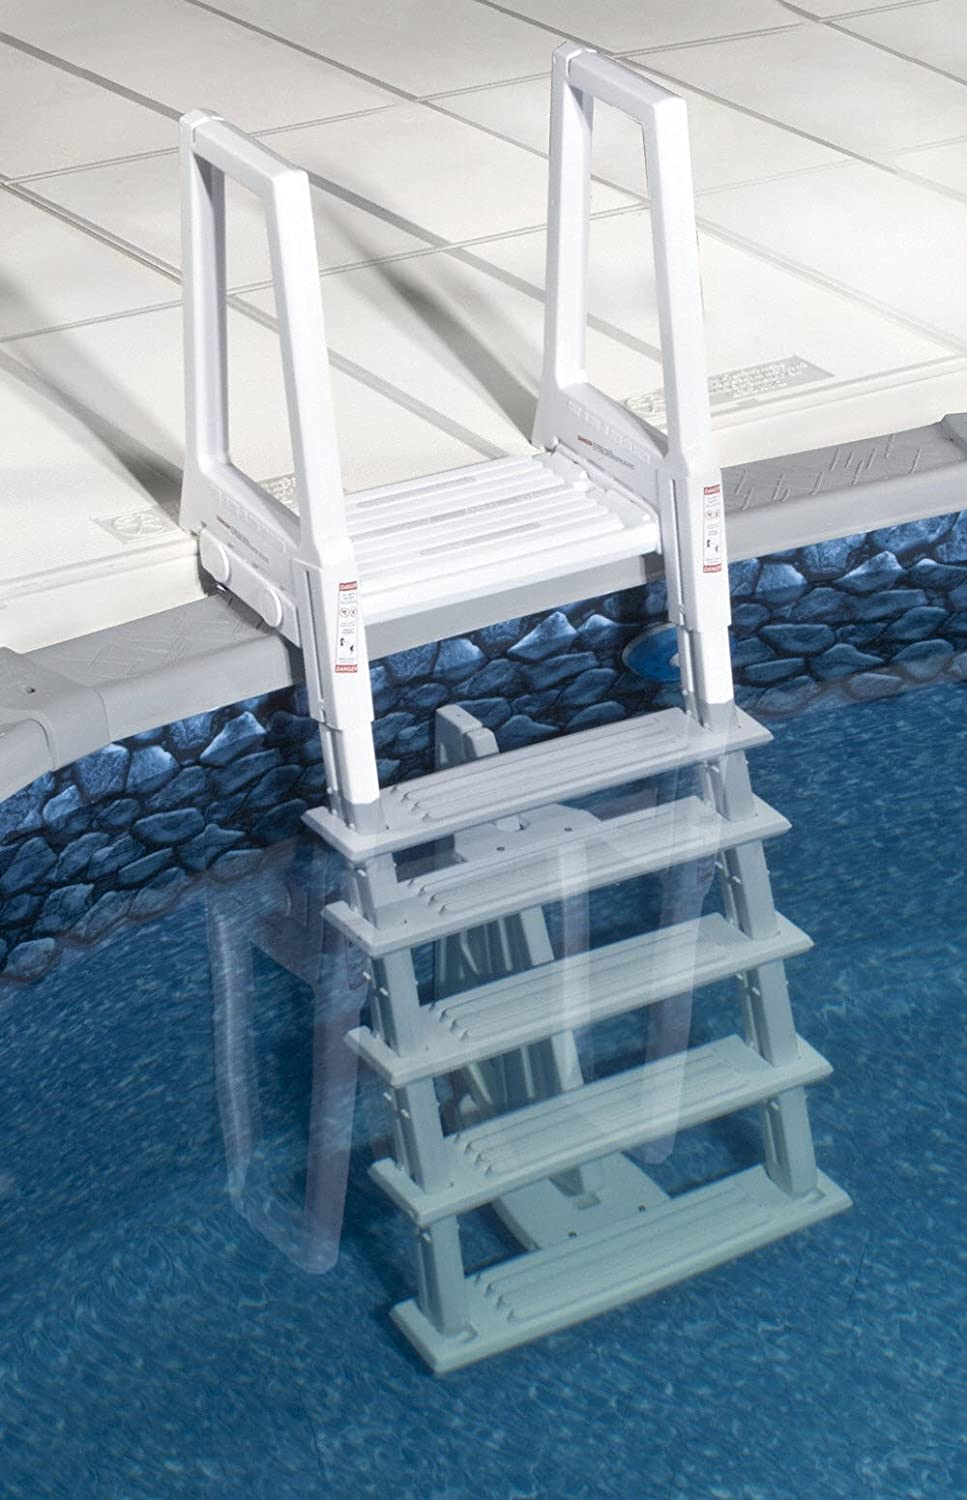 Superieur Amazon.com : 46 56 Inch Confer Above Ground Swimming Pool In Pool Ladder  Deluxe Pool Ladder : Garden U0026 Outdoor